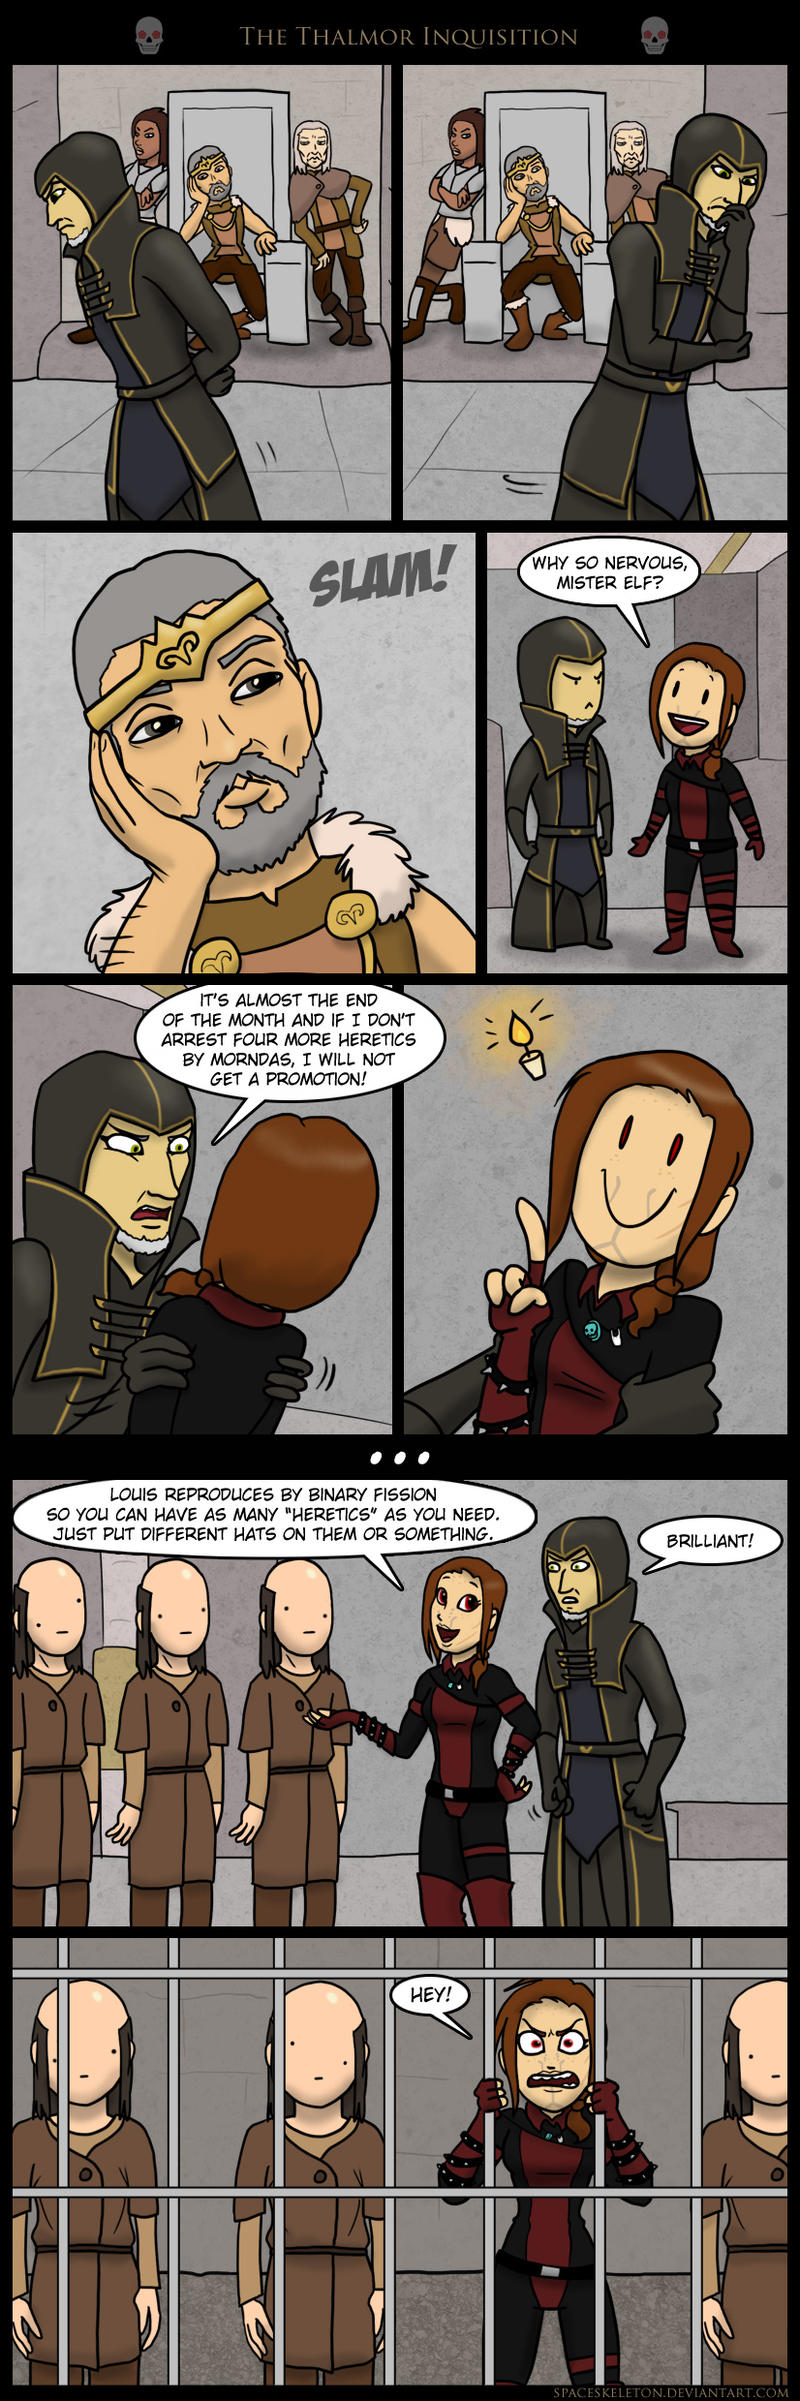 The Thalmor Inquisition by spaceskeleton